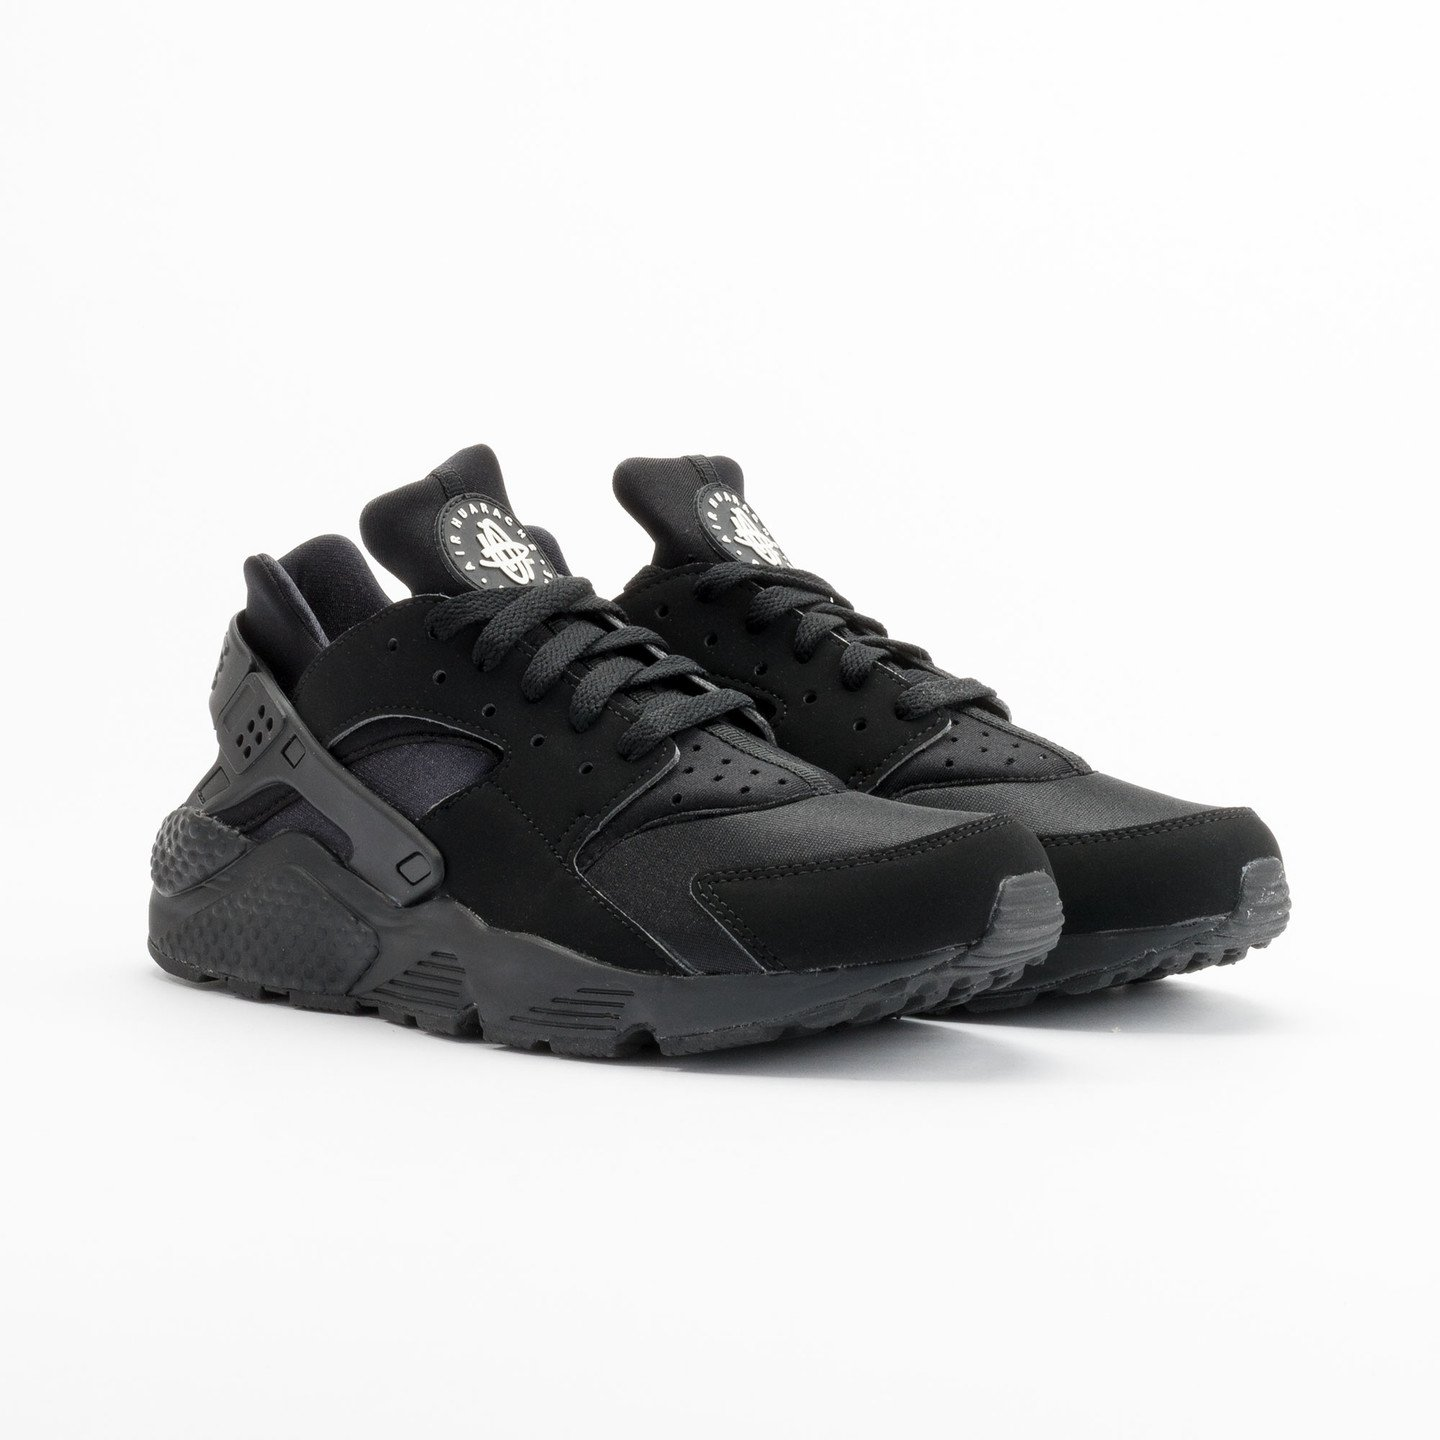 Nike Air Huarache Black/Black-White 318429-003-47